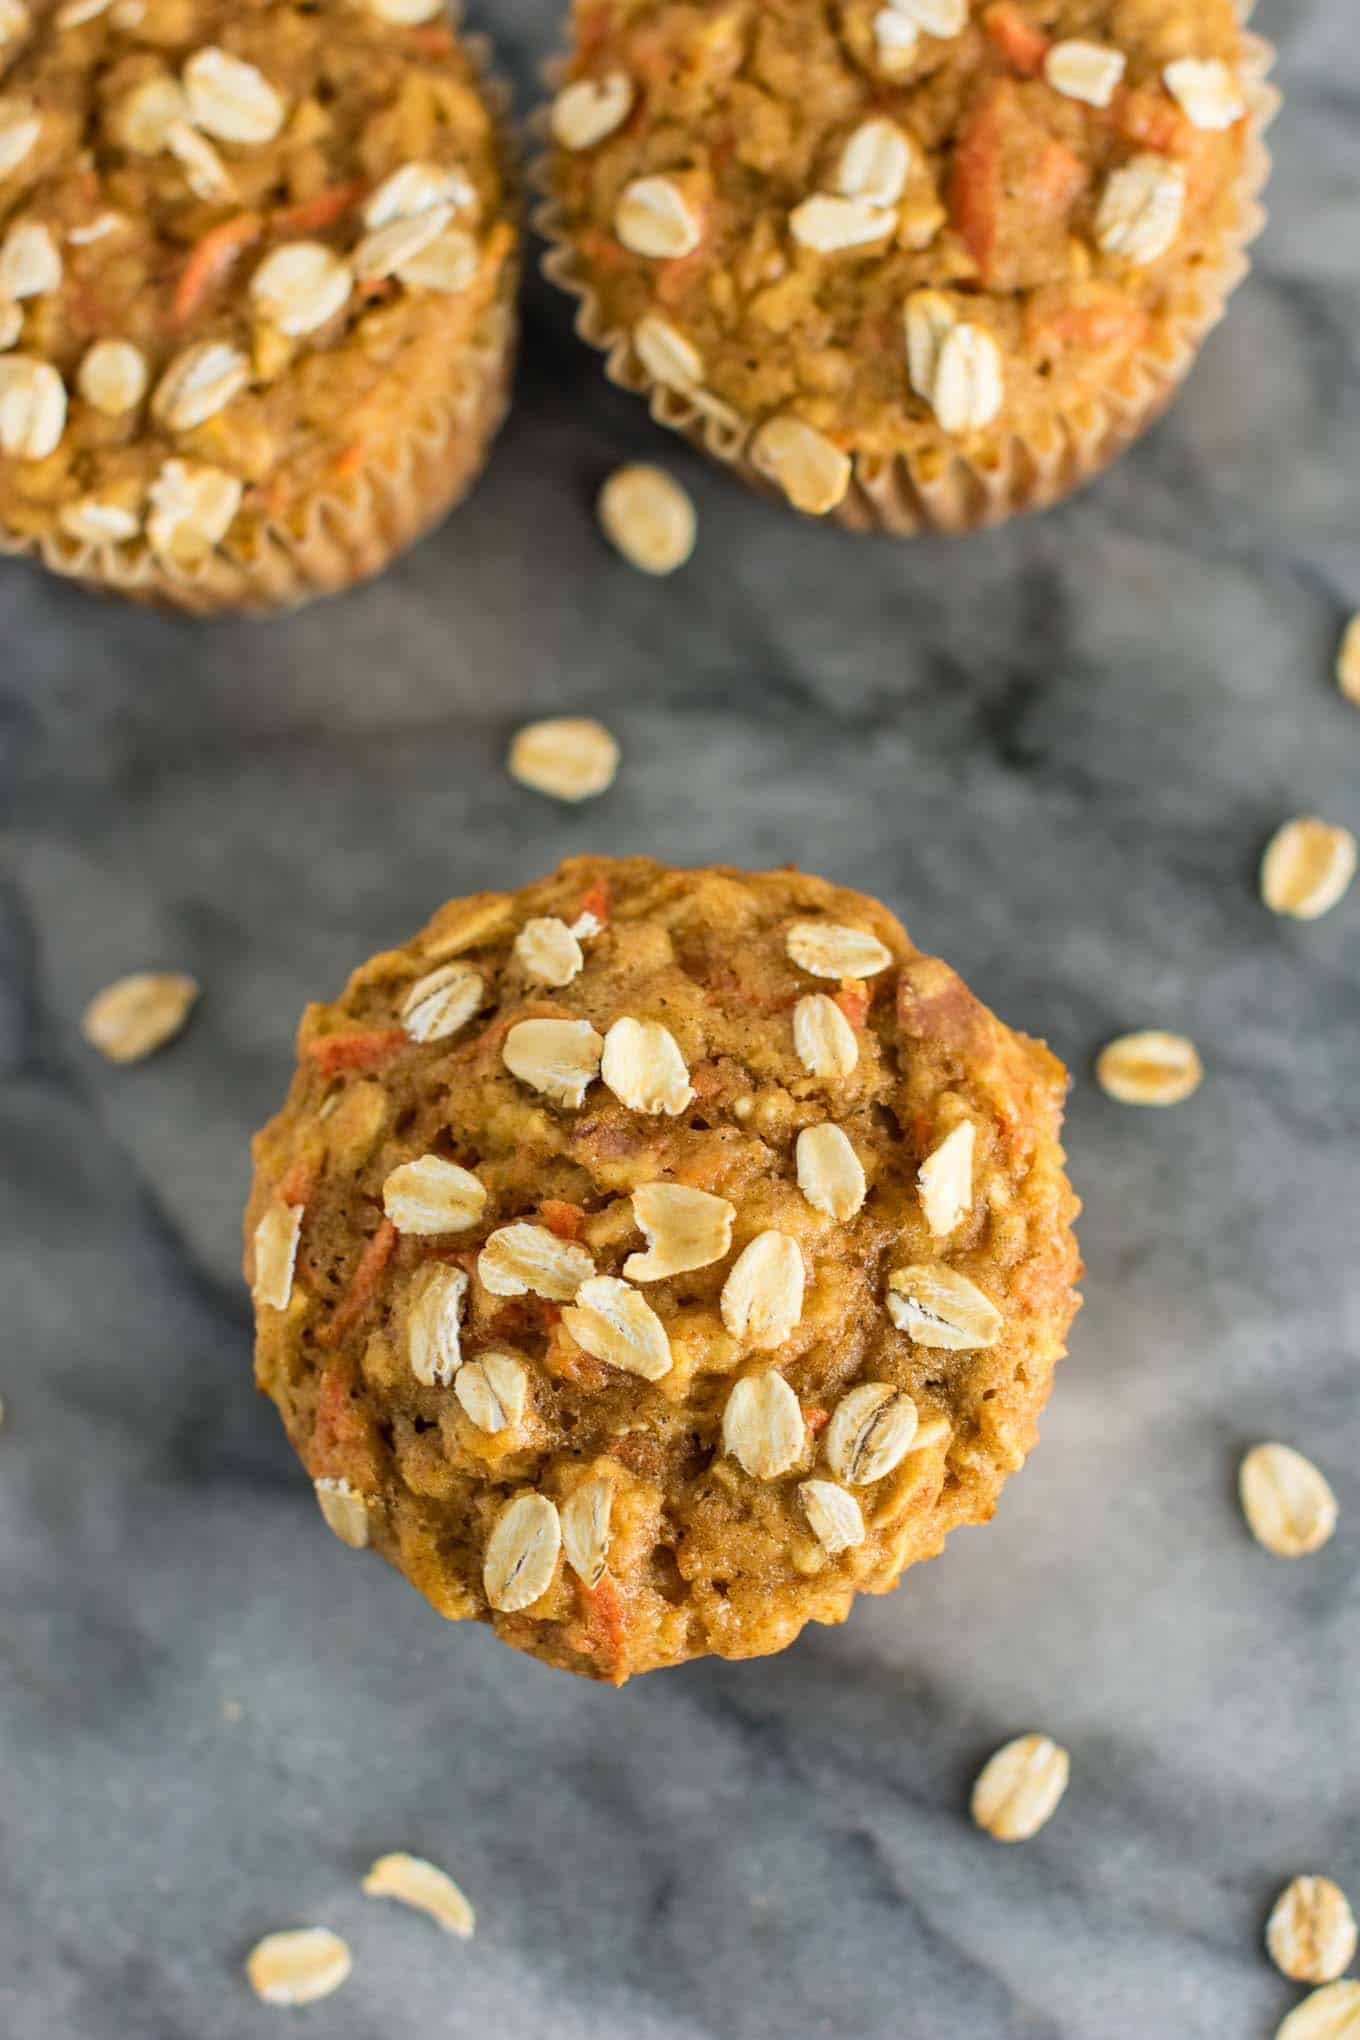 Wholesome Carrot Apple Muffins made with pure maple syrup and greek yogurt. Kids will love these! A feel good breakfast or snack for the whole family. (oil free, naturally sweetened) #carrotapplemuffins #healthymuffins #healthysnack #kidfriendlysnack #greekyogurt #vegetarian